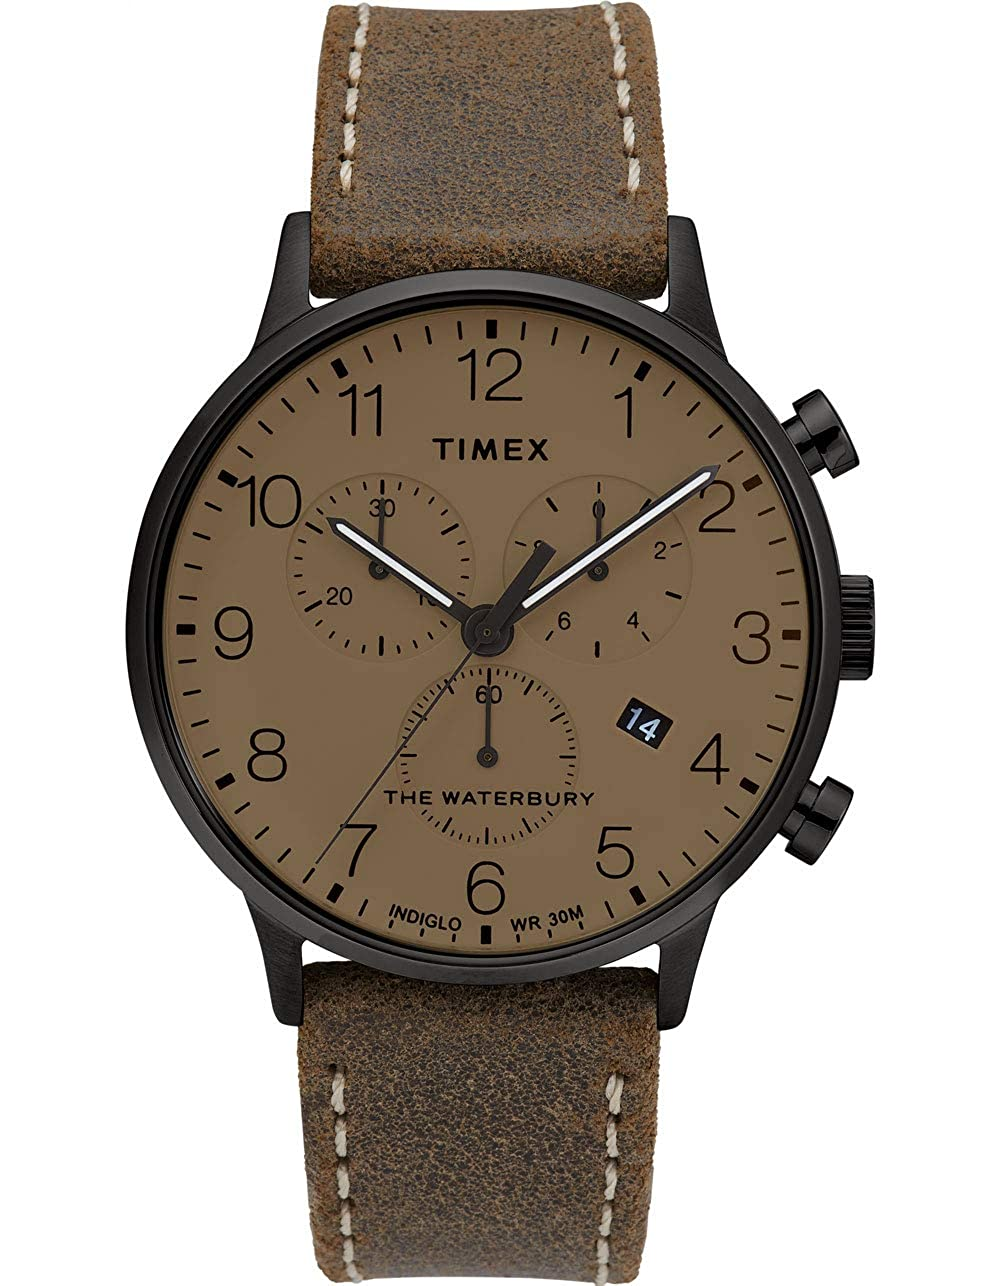 Timex Men's Waterbury Classic Chronograph Leather Strap Watch, Gunmetal/Moss/Tan (300VQ), One Size